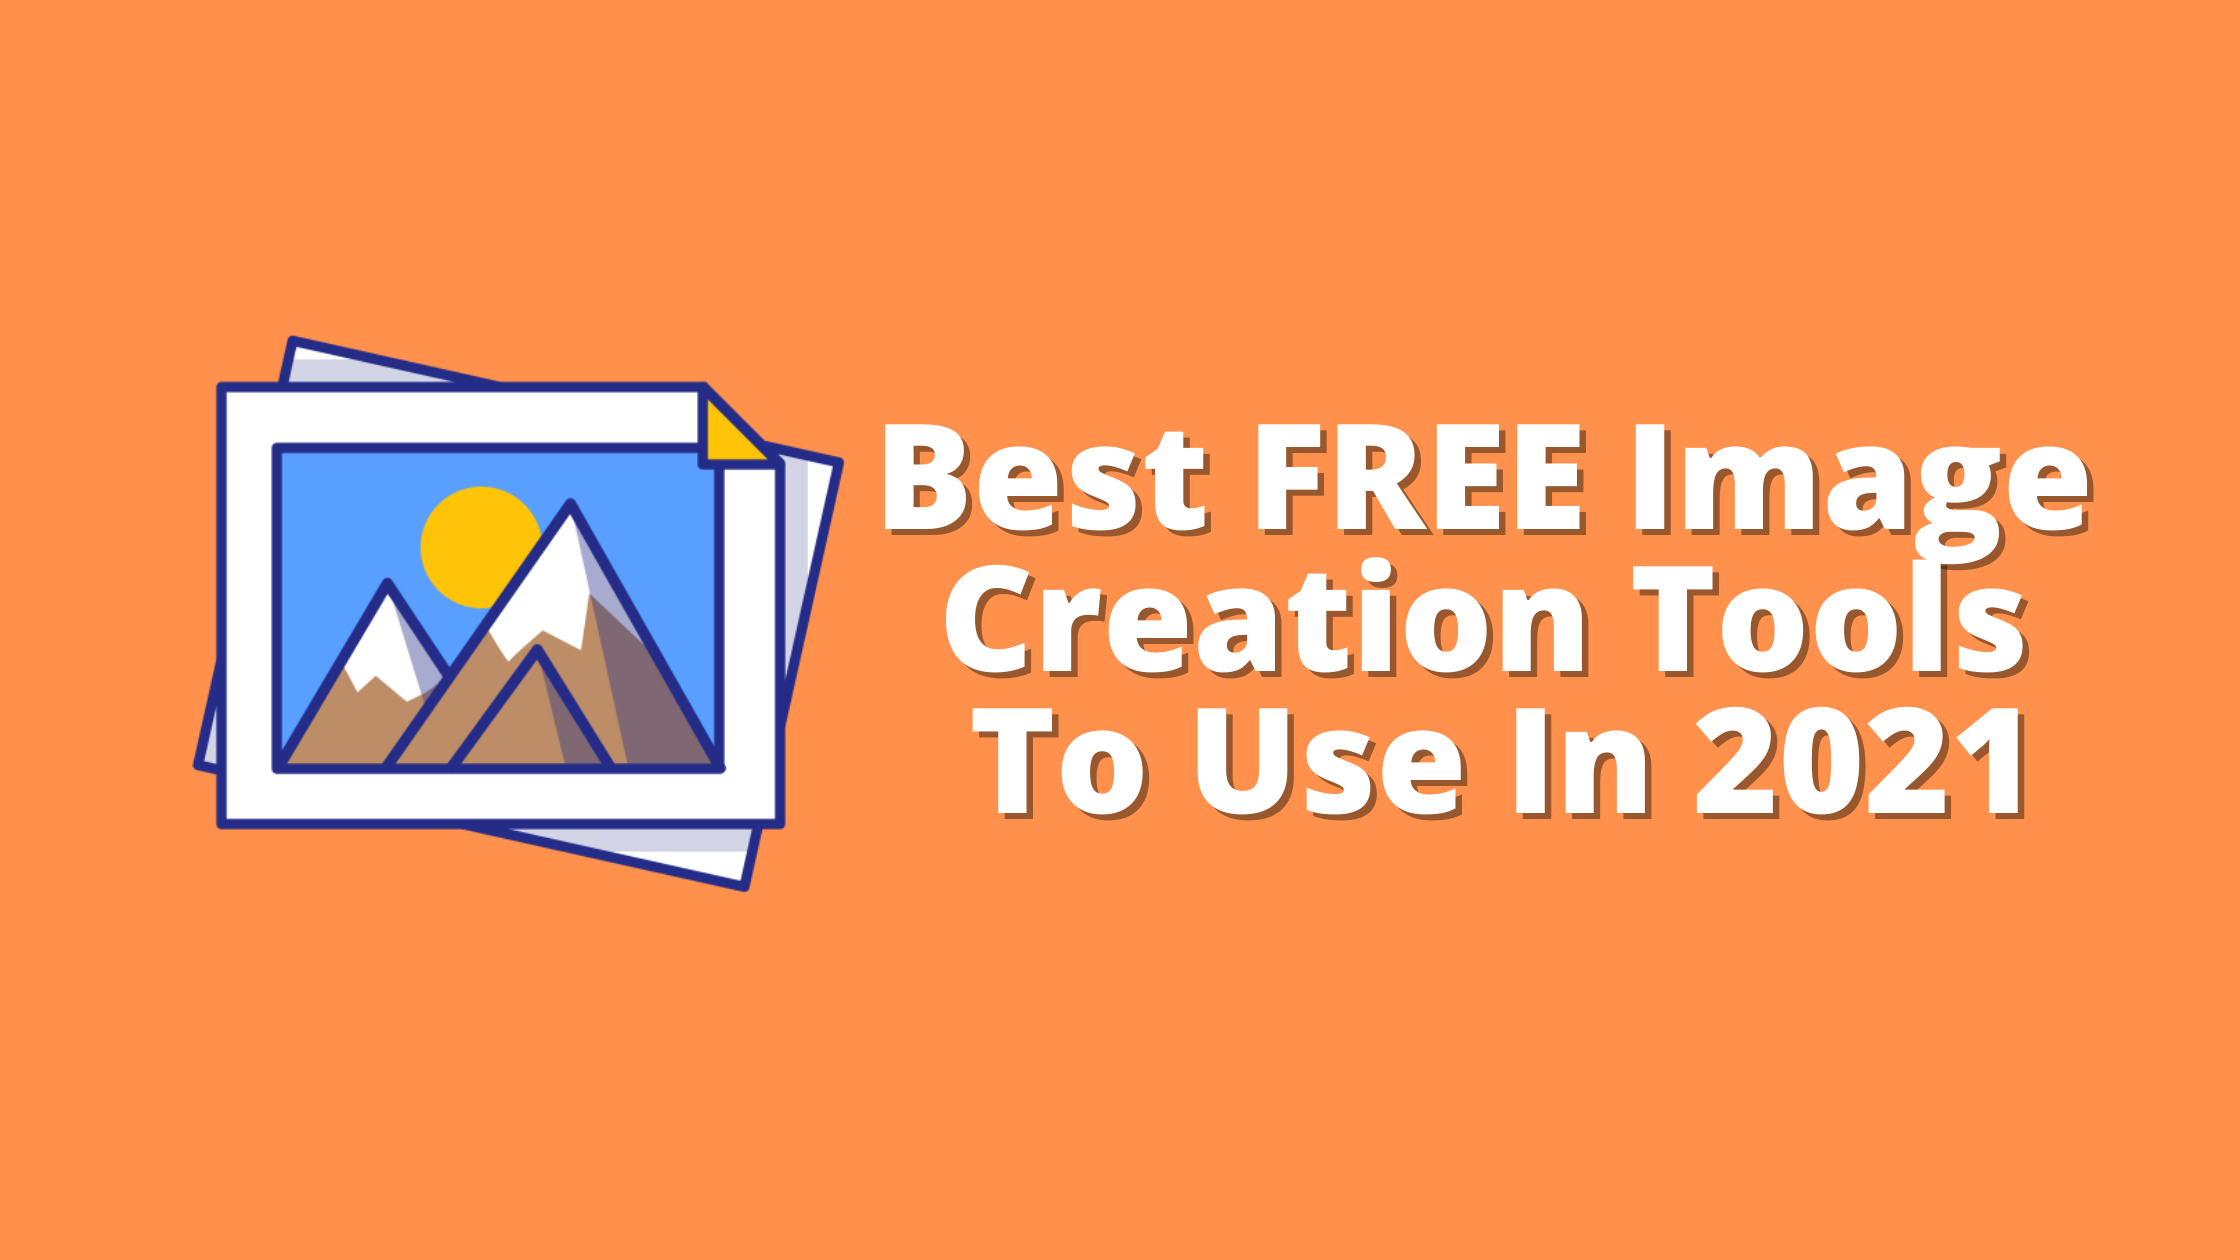 Best FREE Image Creation Tools To Use In 2021